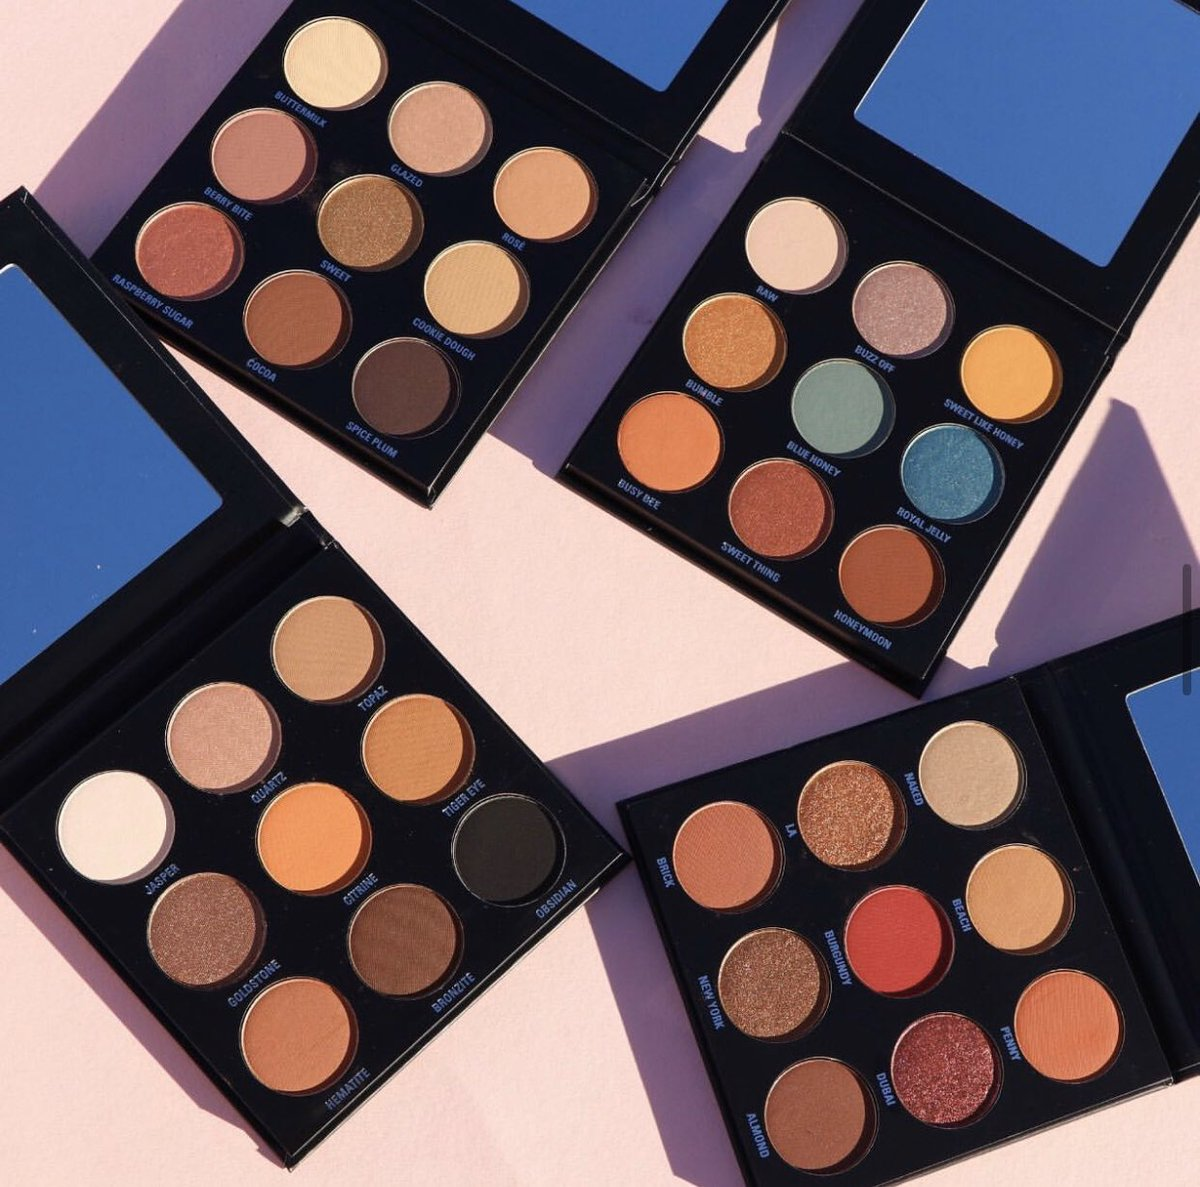 also... special treat for you guys today, all my 9 pan palettes are $20 each today (regular price is $42) at all @ultabeauty  stores and online at  https://www.ulta.com/ulta/a/_/Ntt-Kyshadow/Nty-1?Dy=1&ciSelector=searchResults  …